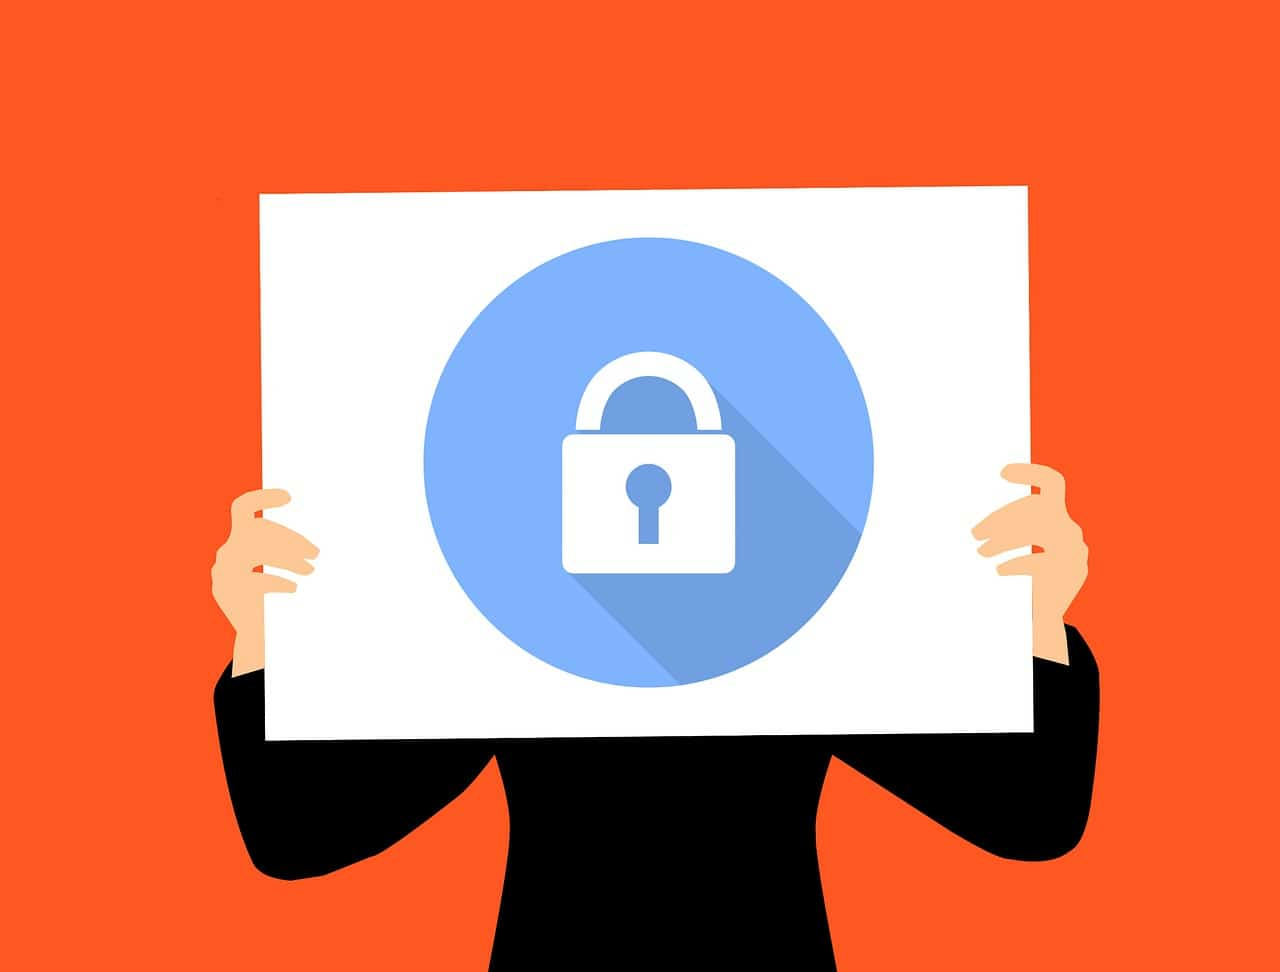 Illustration of a person holding a security symbol. Keeping your server updated is essential for security.